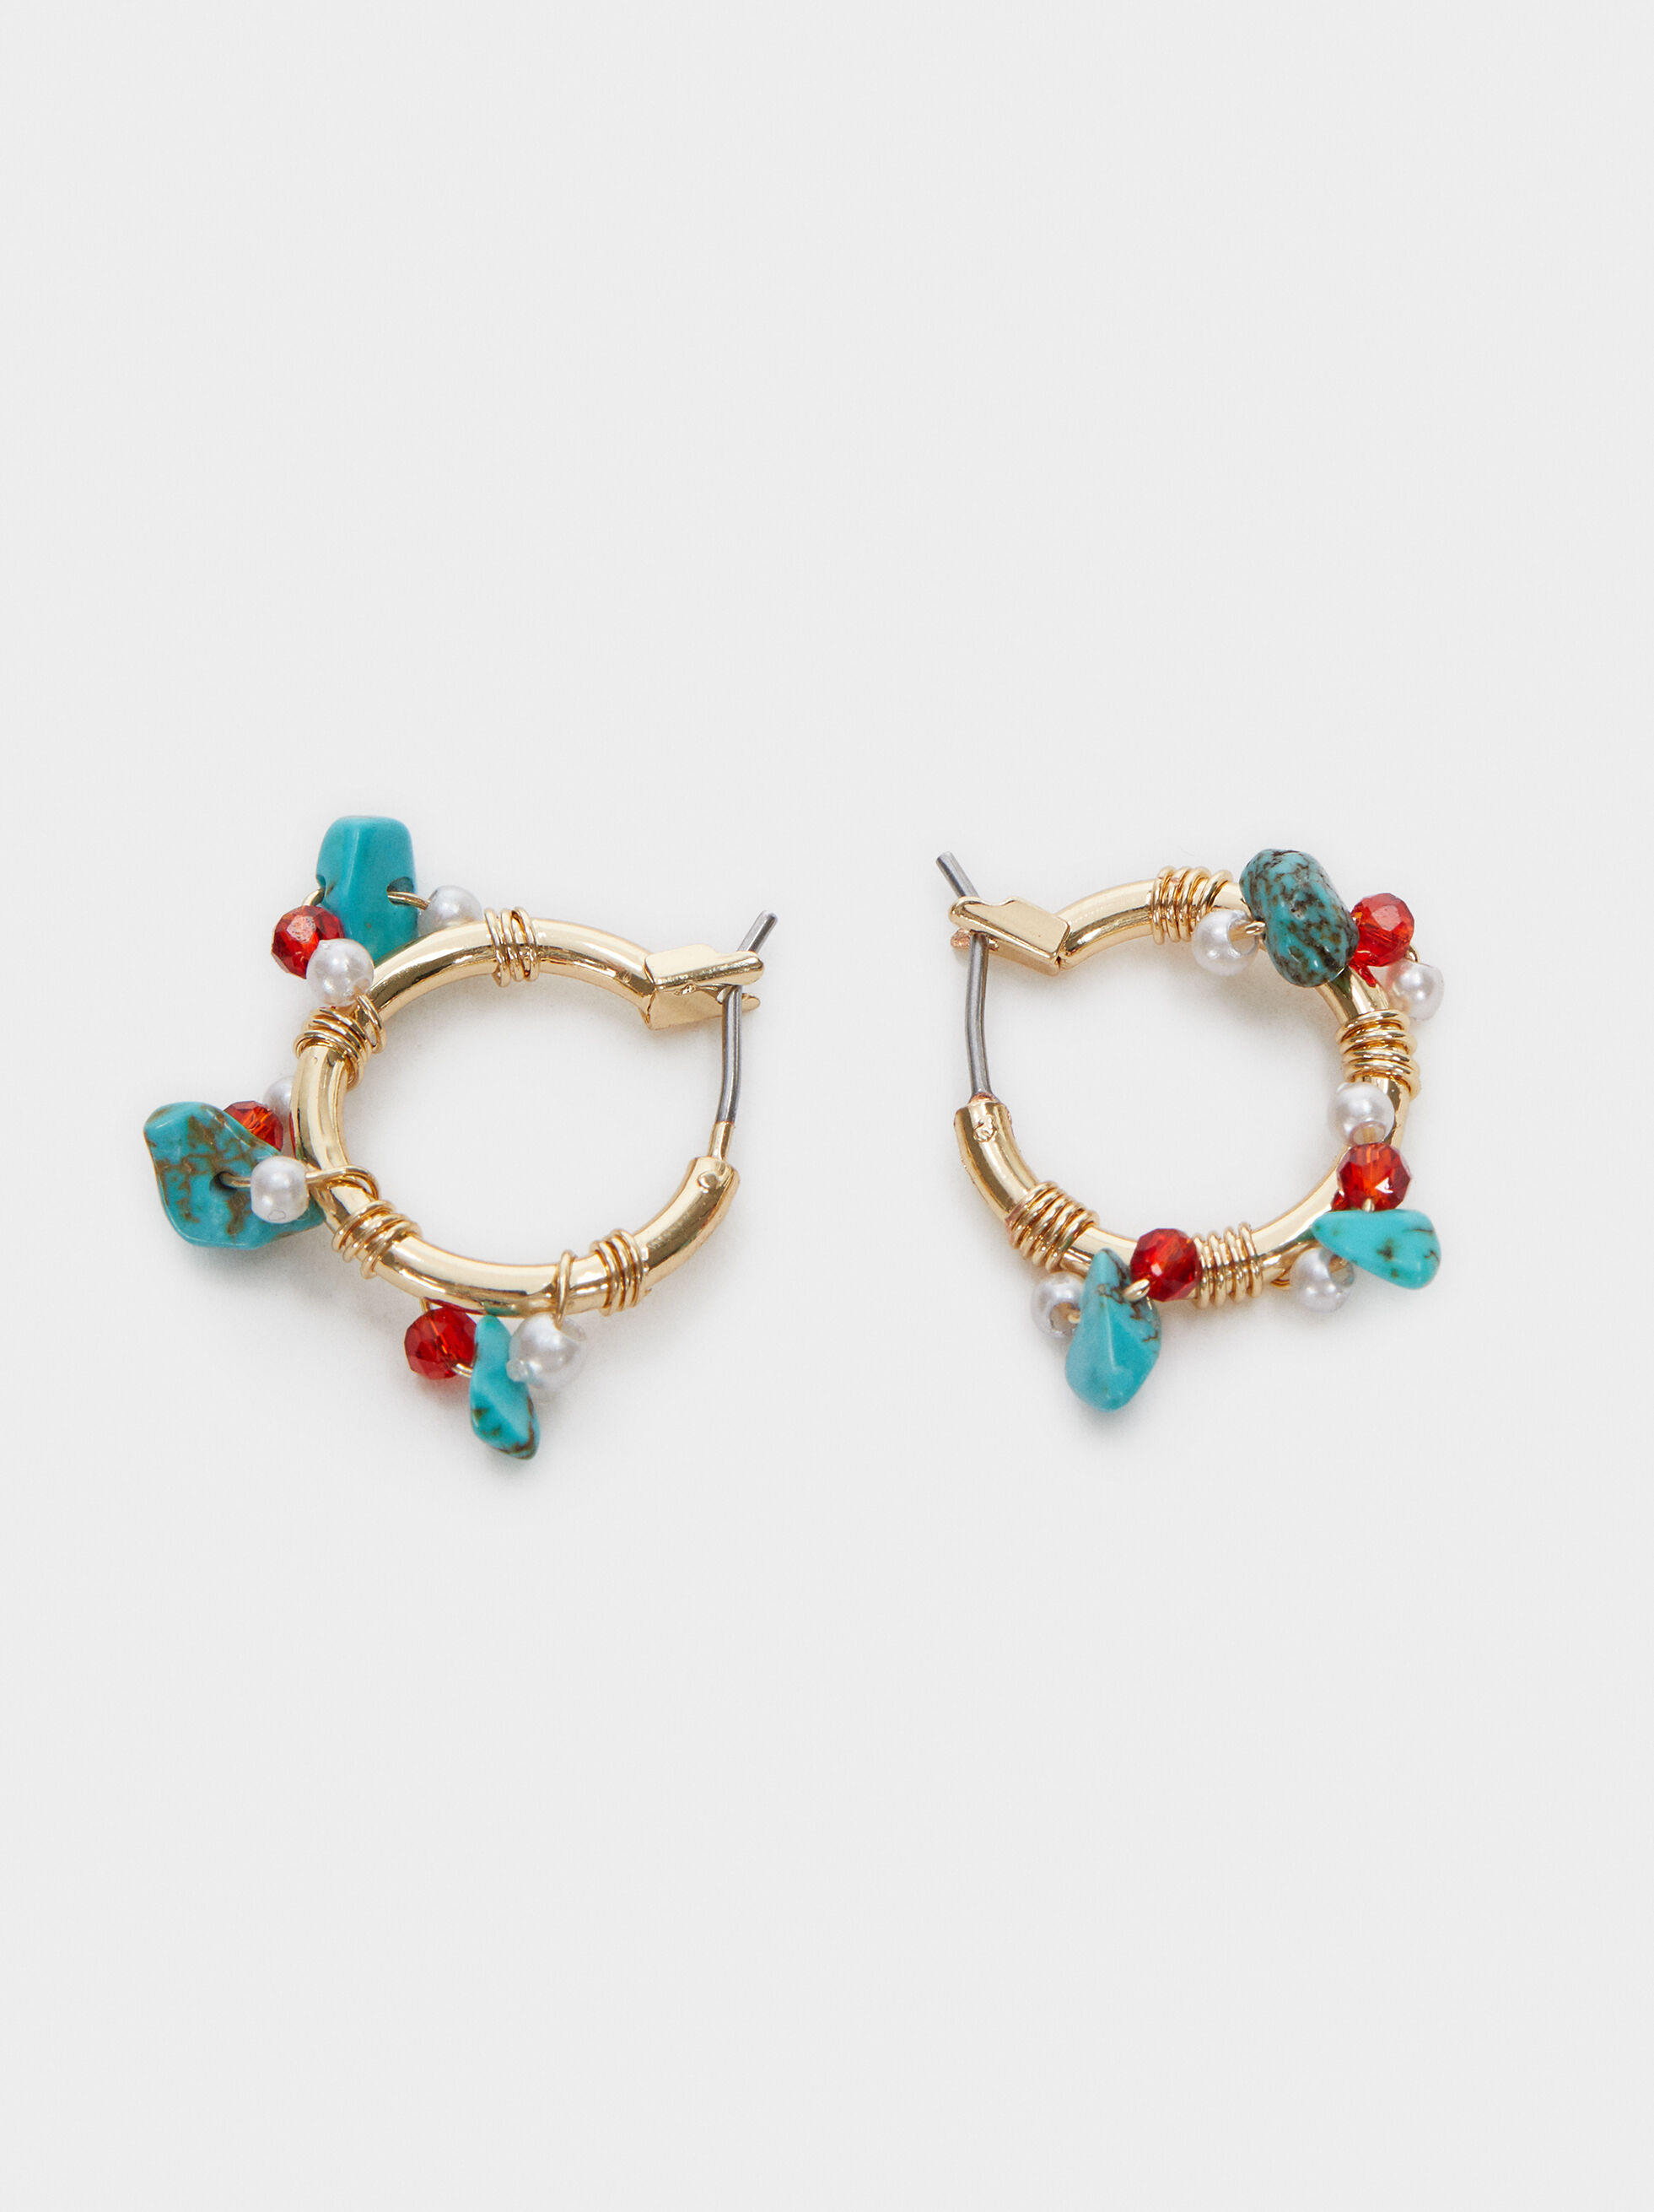 Recife Short Hoop Earrings With Beads, Multicolor, hi-res